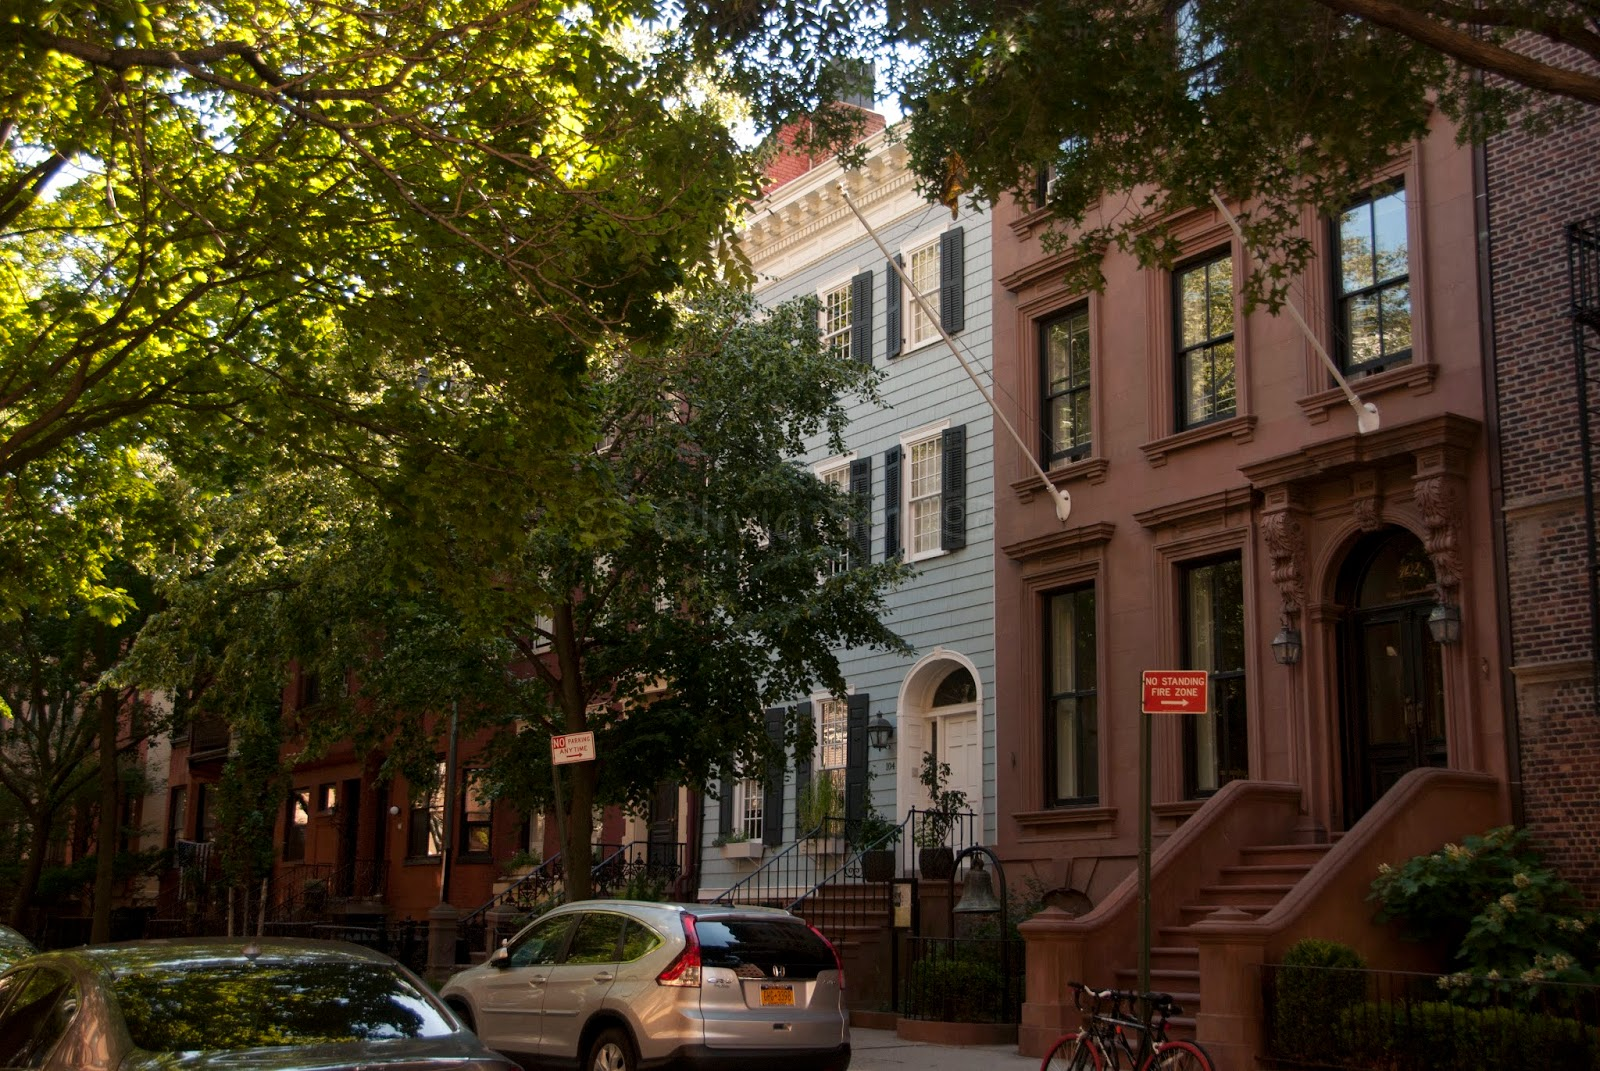 brooklyn heights, new york city, usa